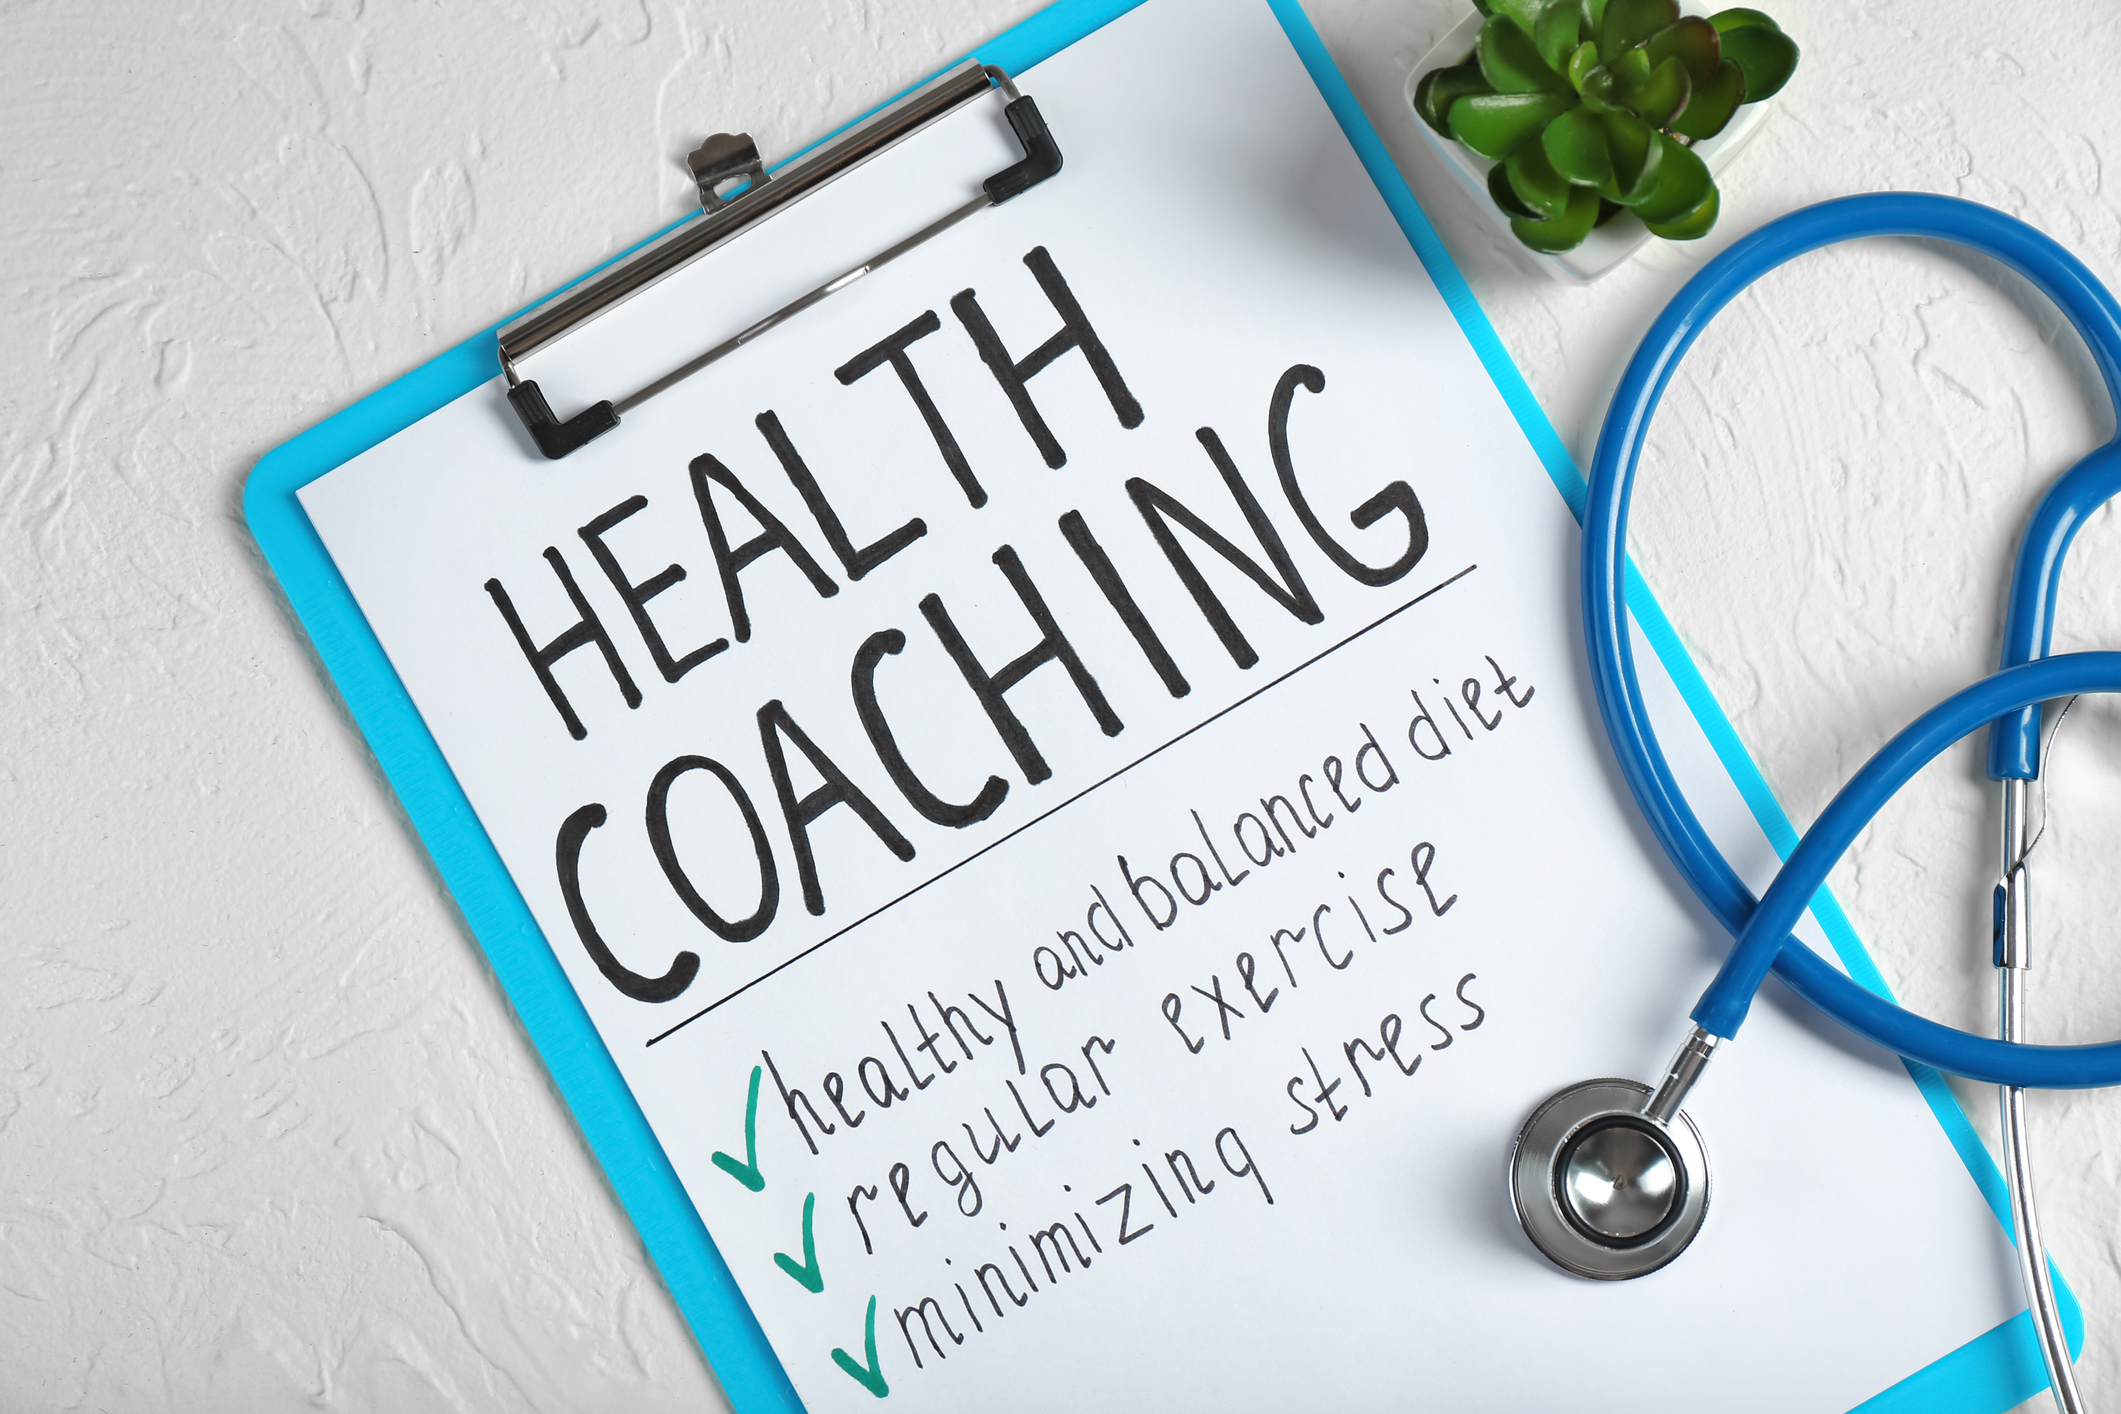 Things to consider before hiring a health coach